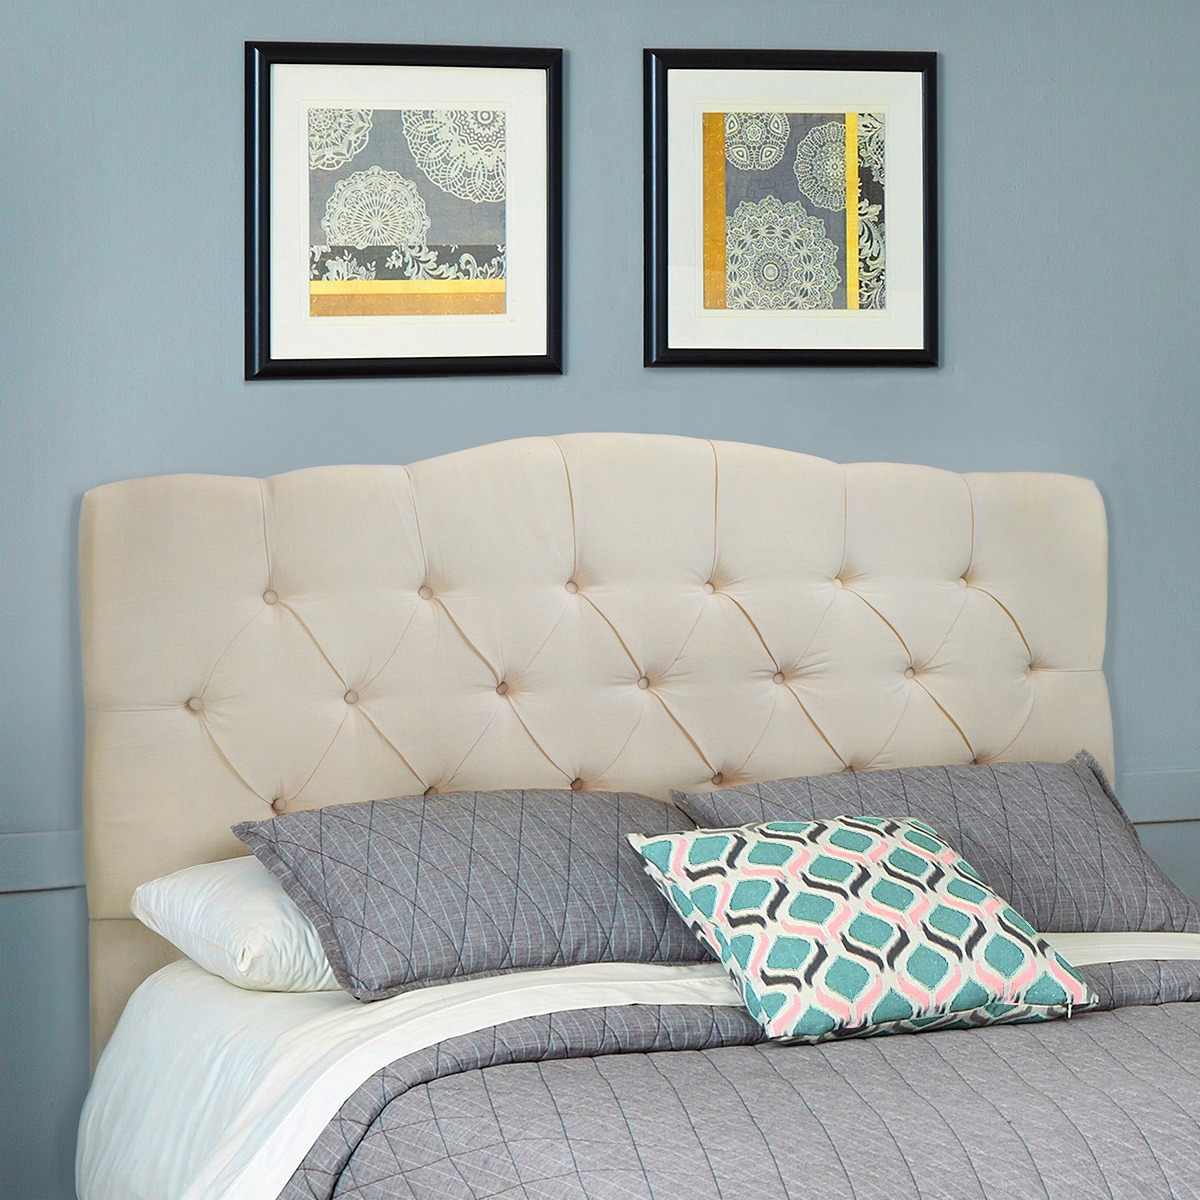 Queen Full Upholstered Headboard Bed Frame Button Bedroom